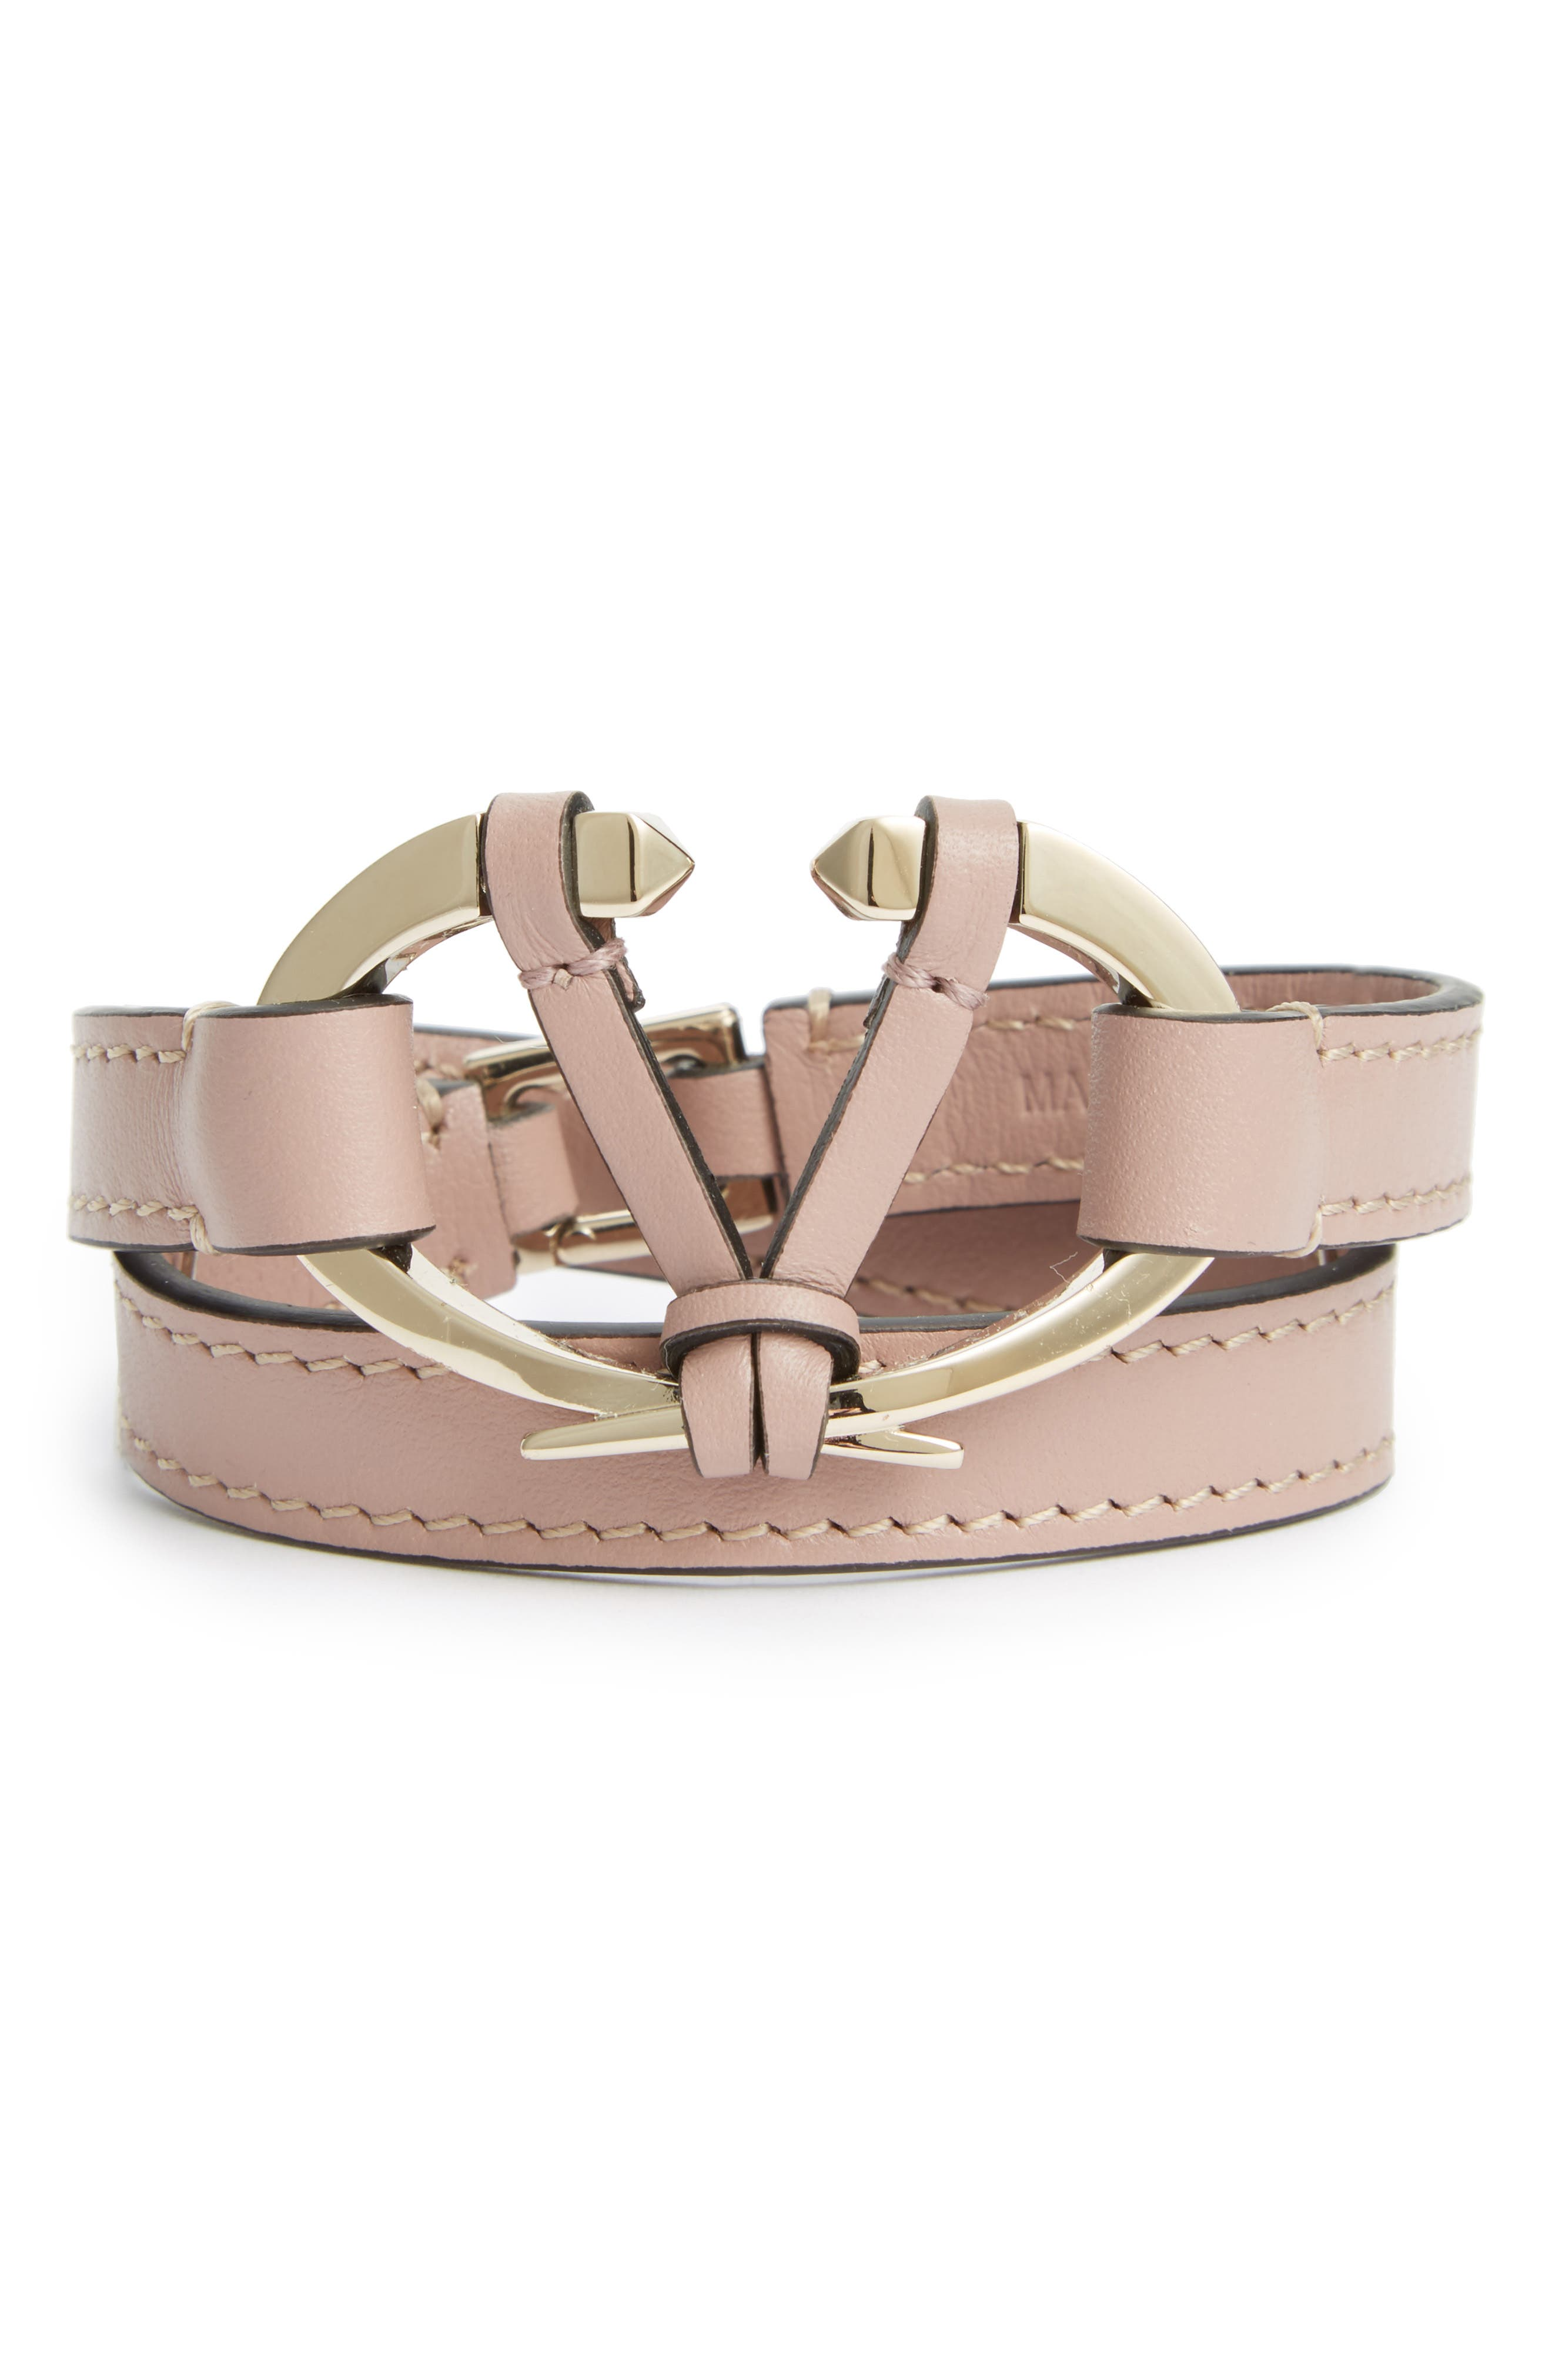 VALENTINO GARAVANI Leather Wrap Bracelet